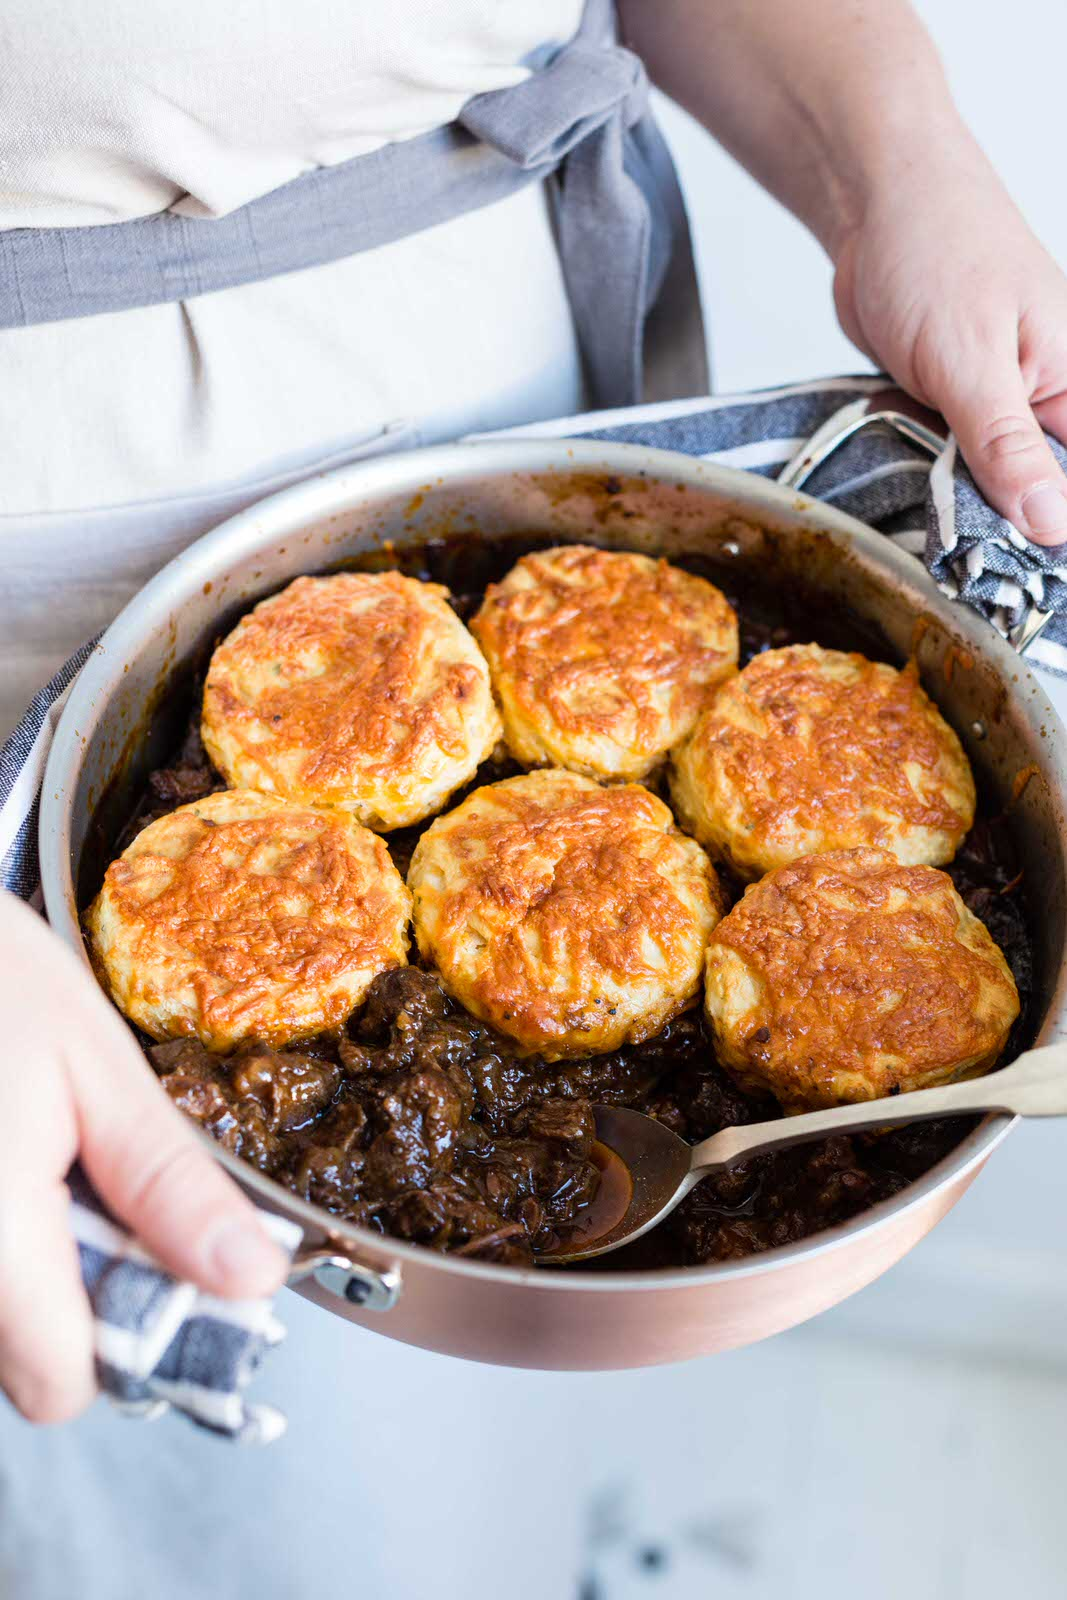 MichelleParkinPhotography_FALK_BEEF COBBLER HIGH RES JPG-1776.jpg